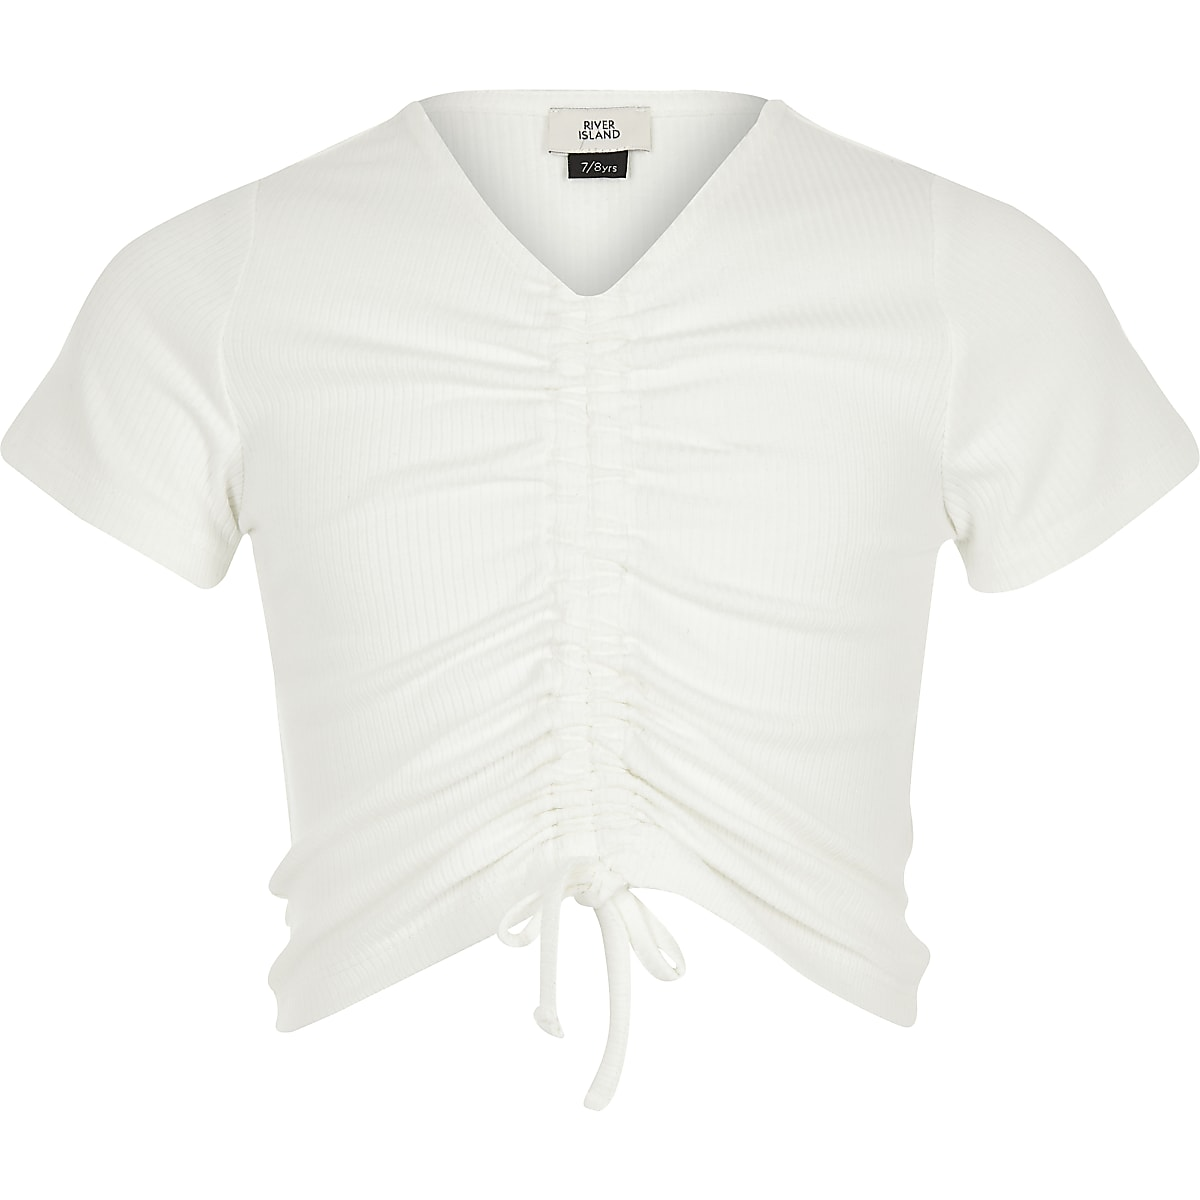 Girls white ruched front T-shirt